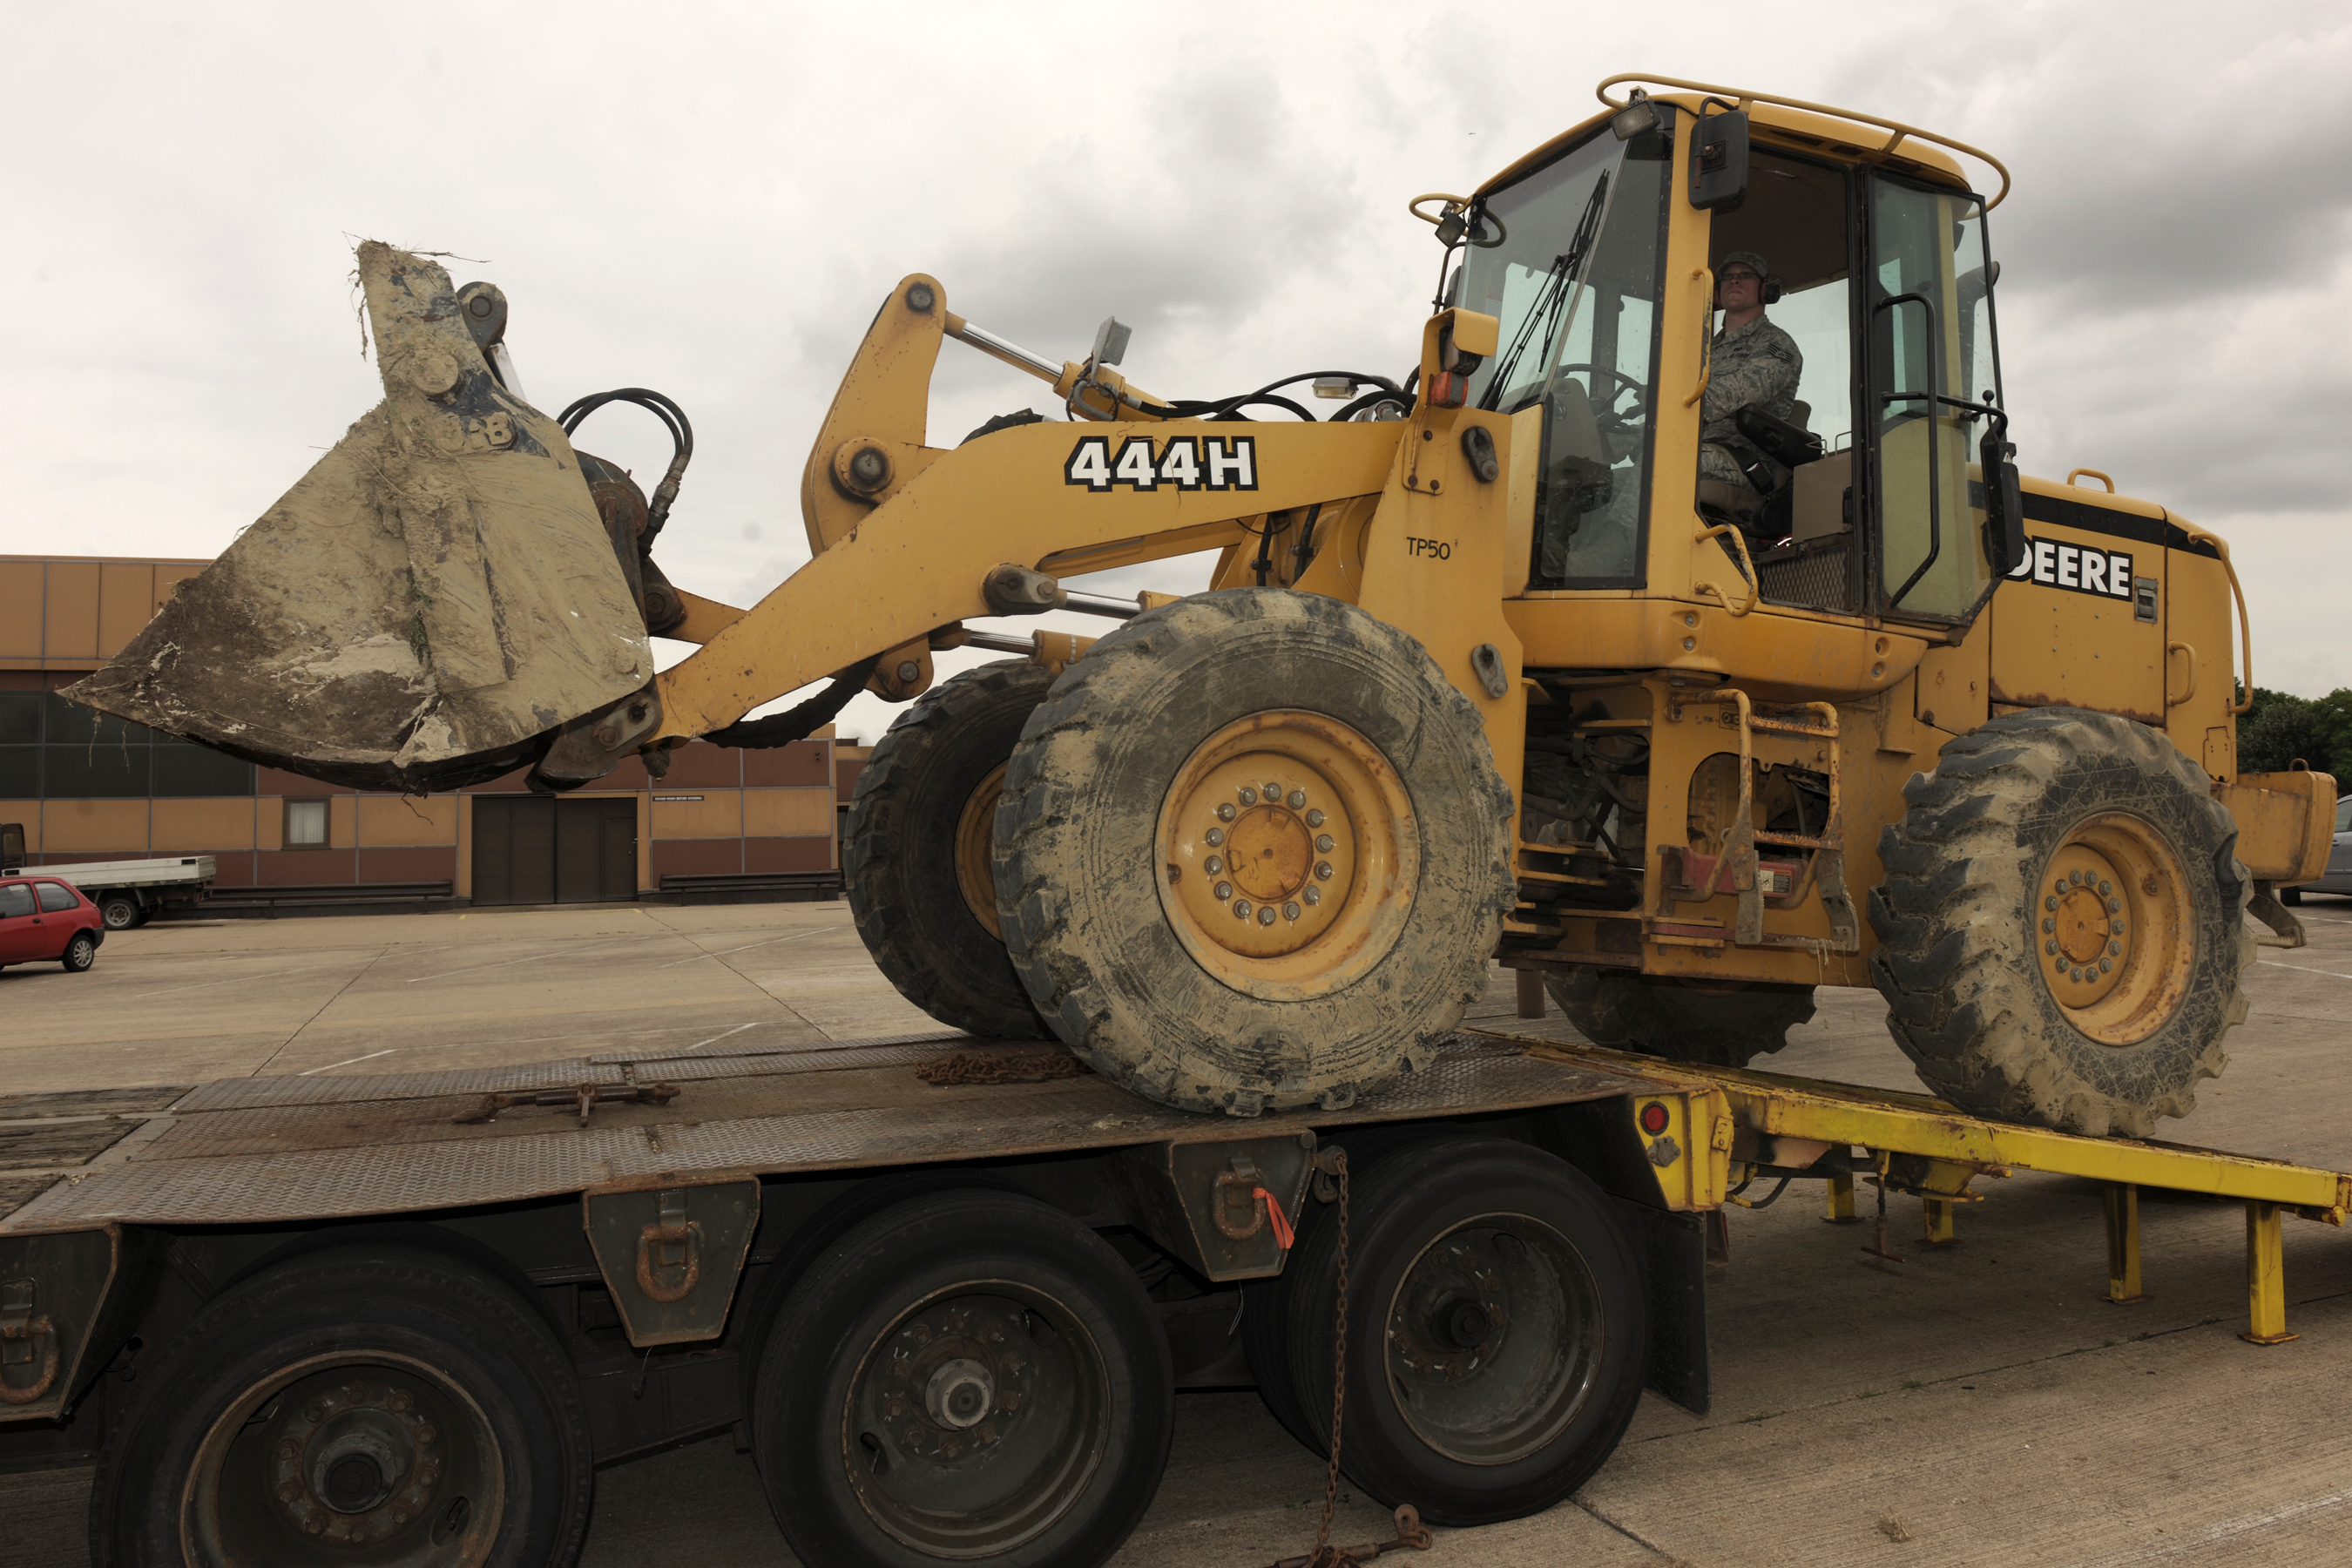 unloading a front end loader u003e 501st combat support wing u003e article